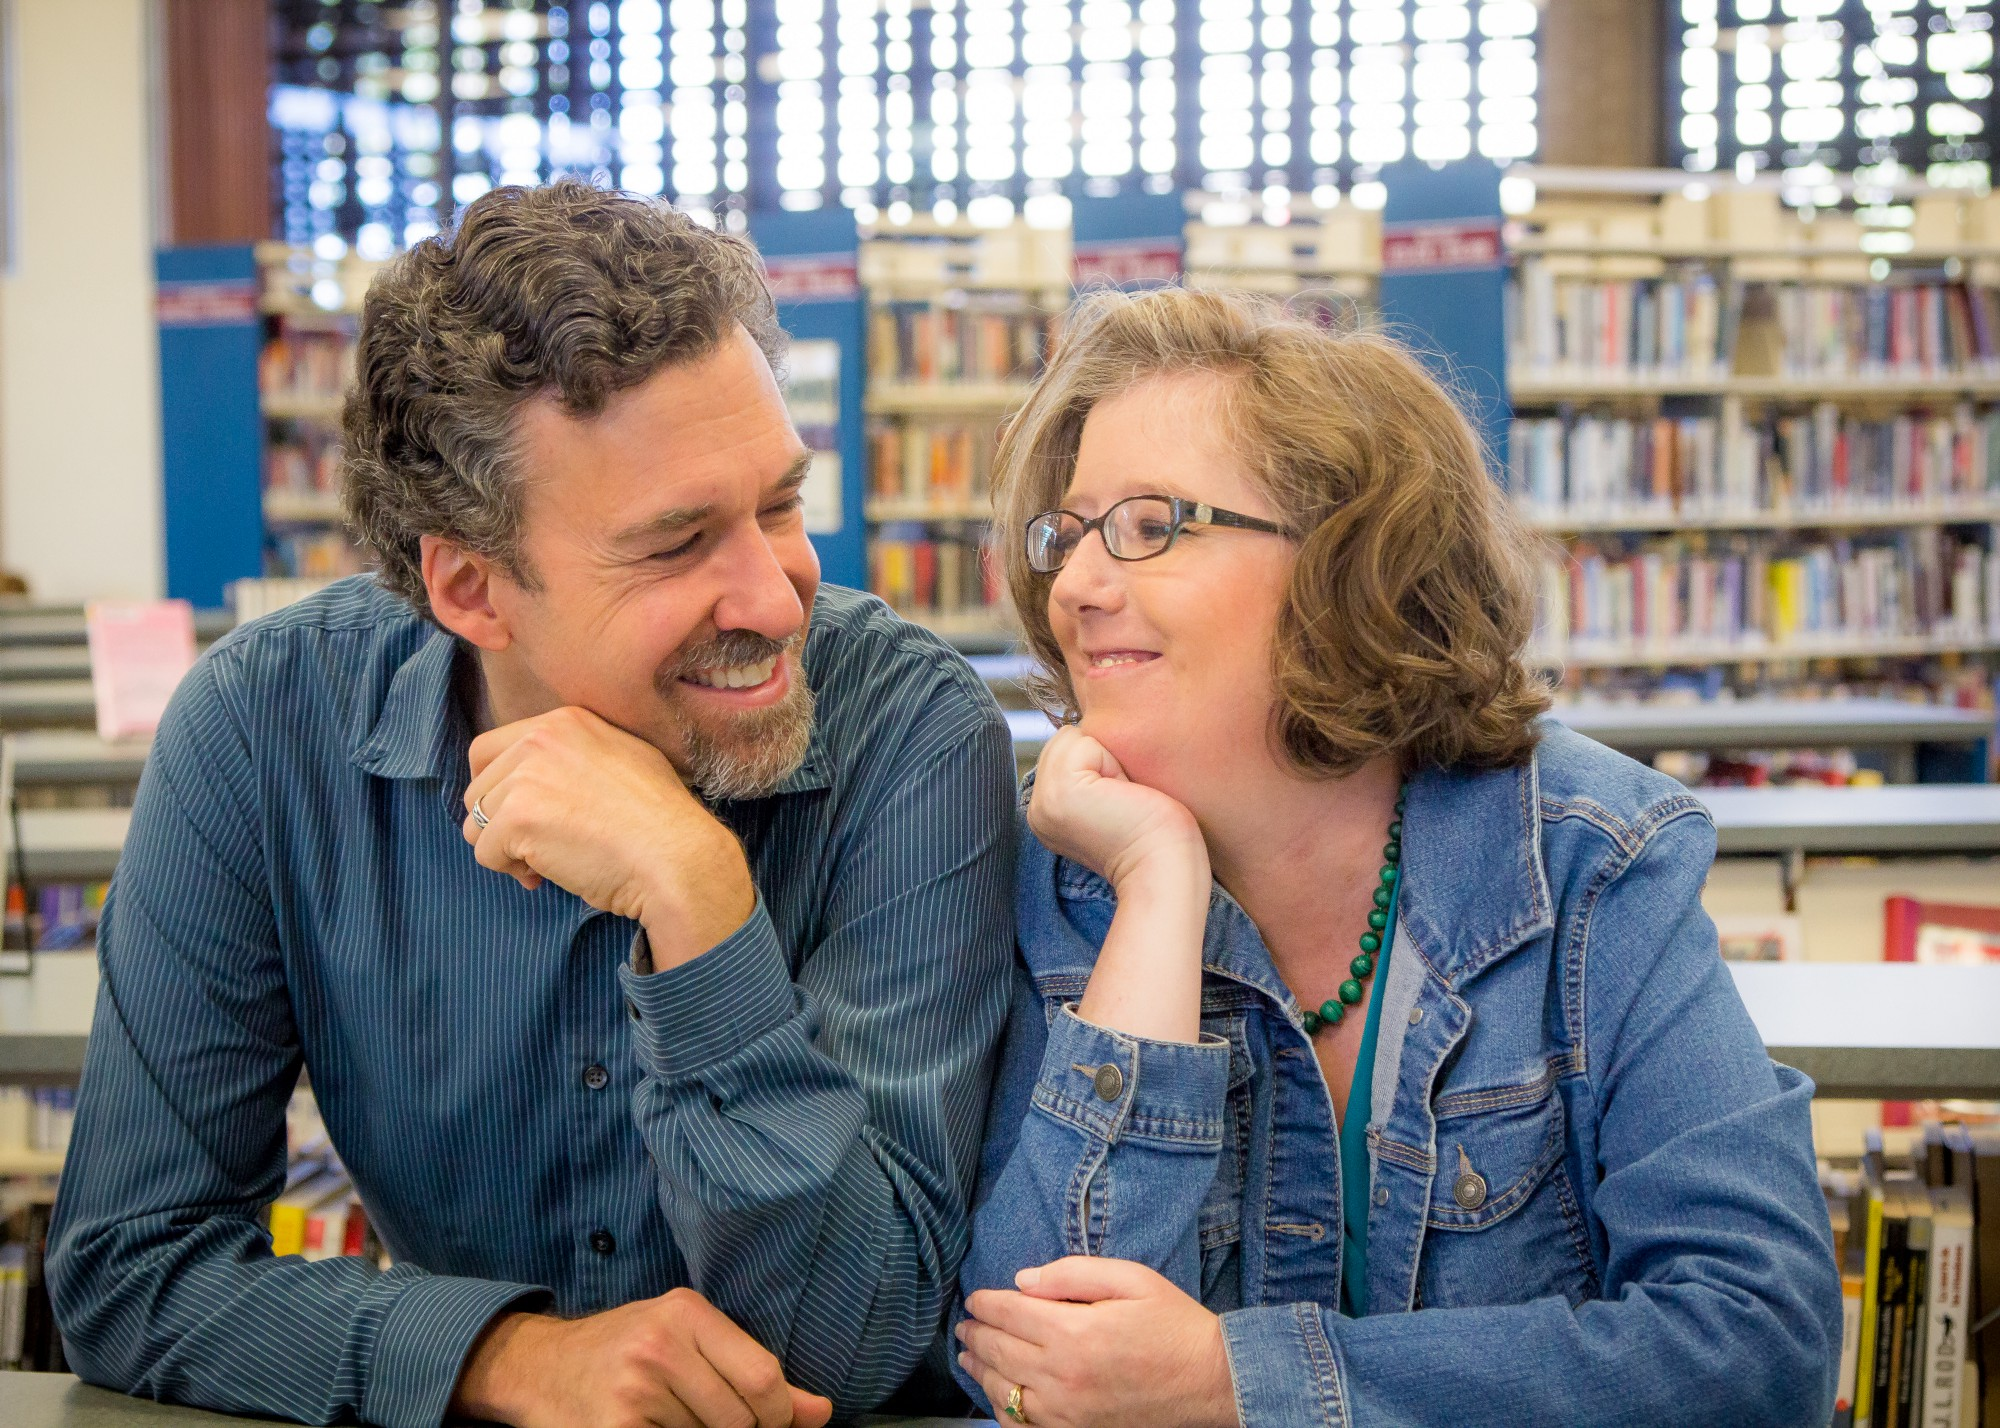 Photo of Juliet and Brian Freyermuth at Santa Rosa Library by author.